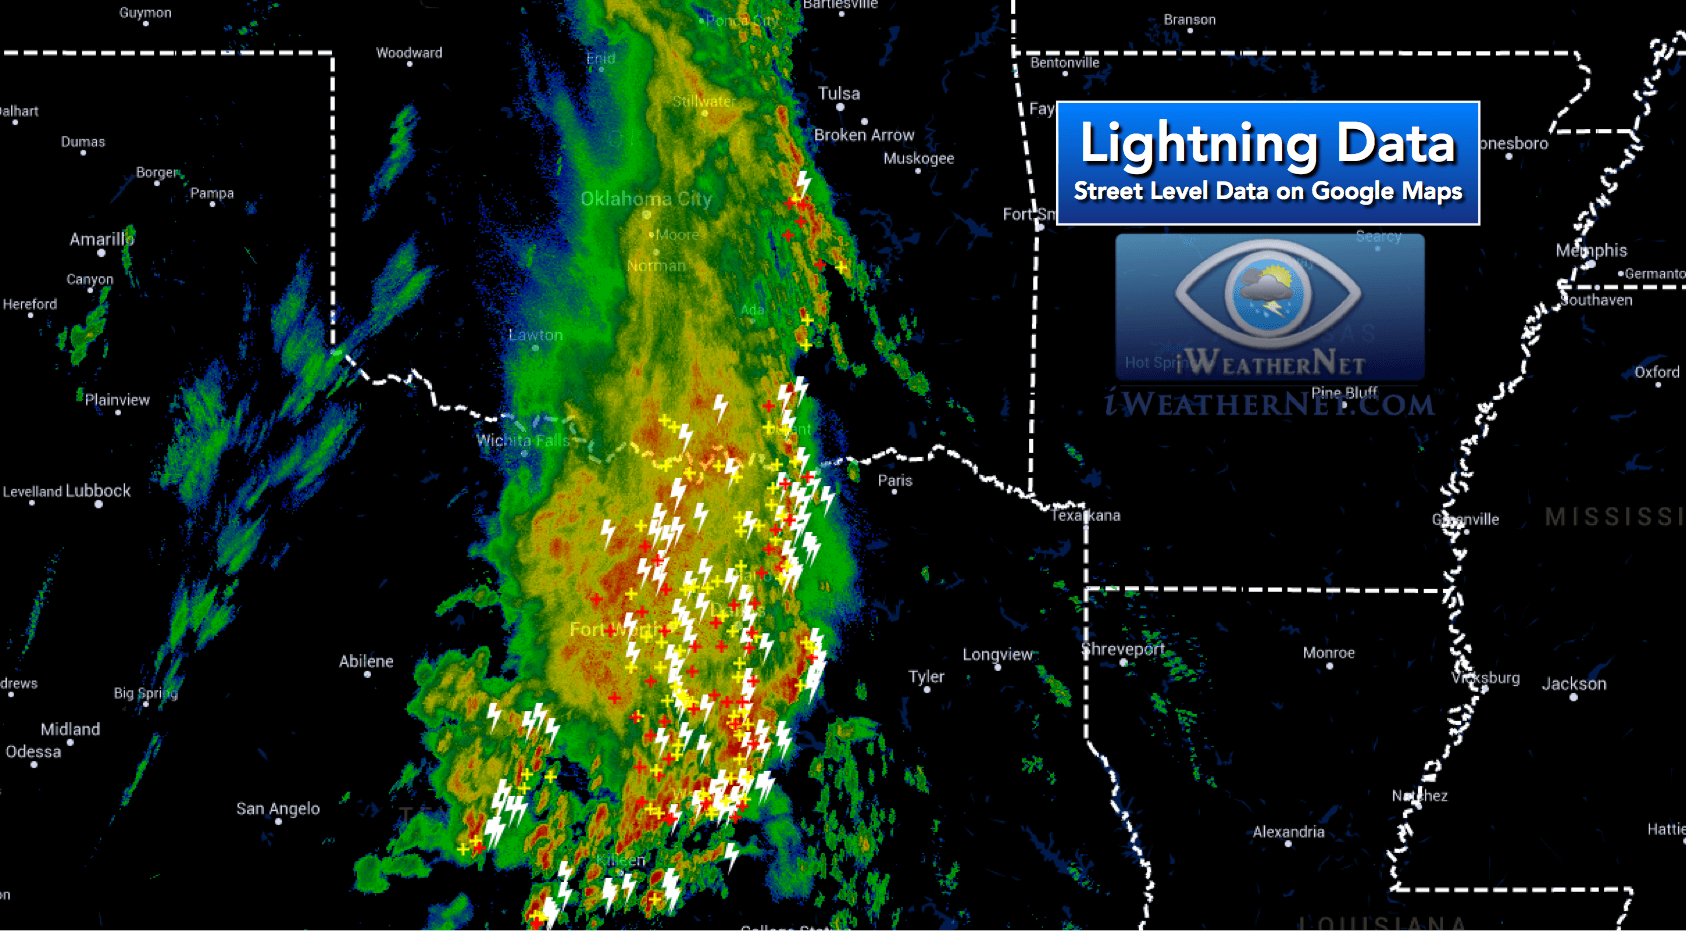 Us Lightning Map Real Time Latest Lightning Strikes on Google Maps – iWeatherNet